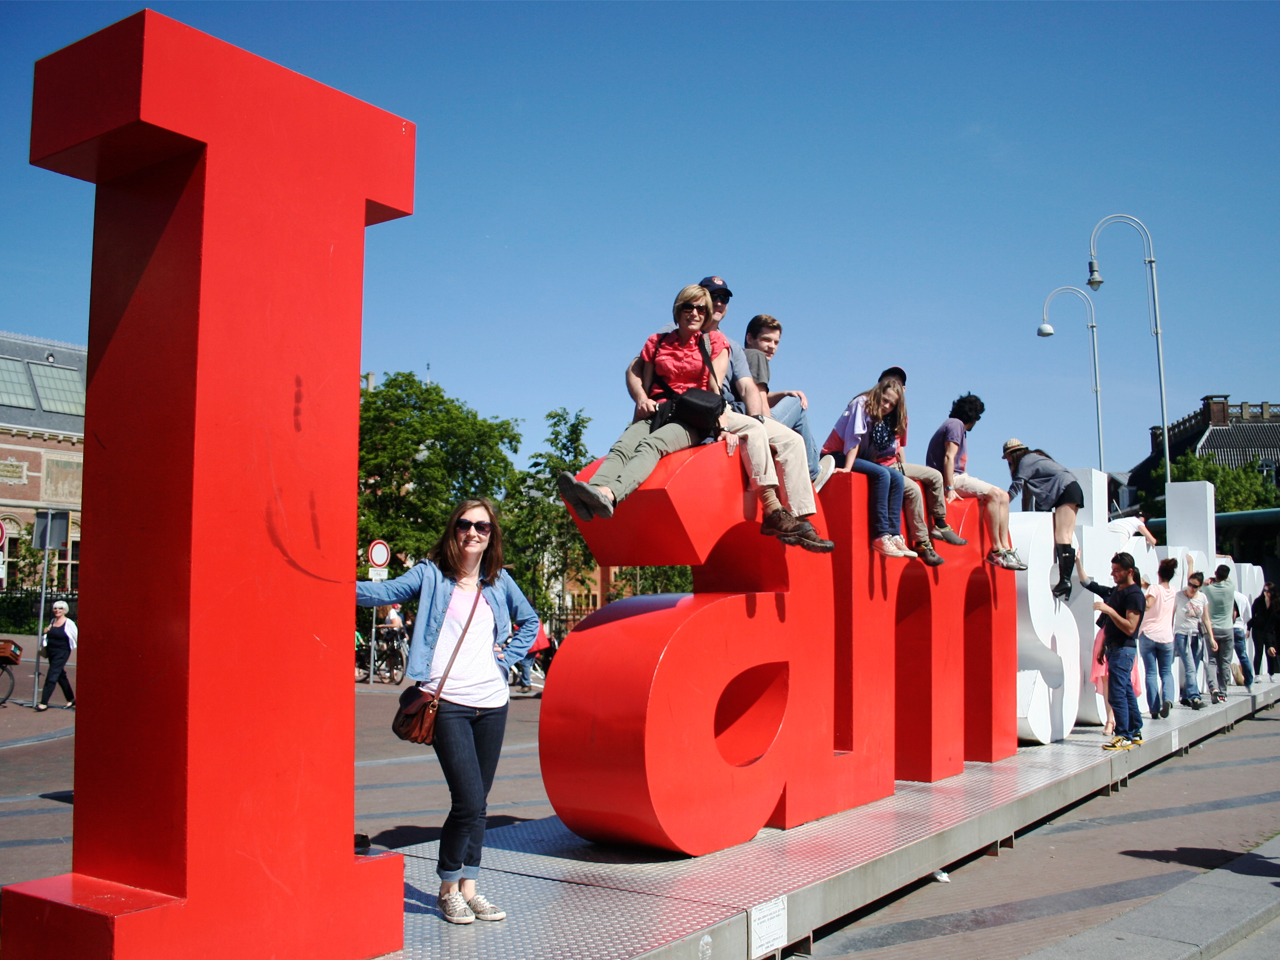 Right next door was the I Amsterdam sign infront of the   Rijksmuseum